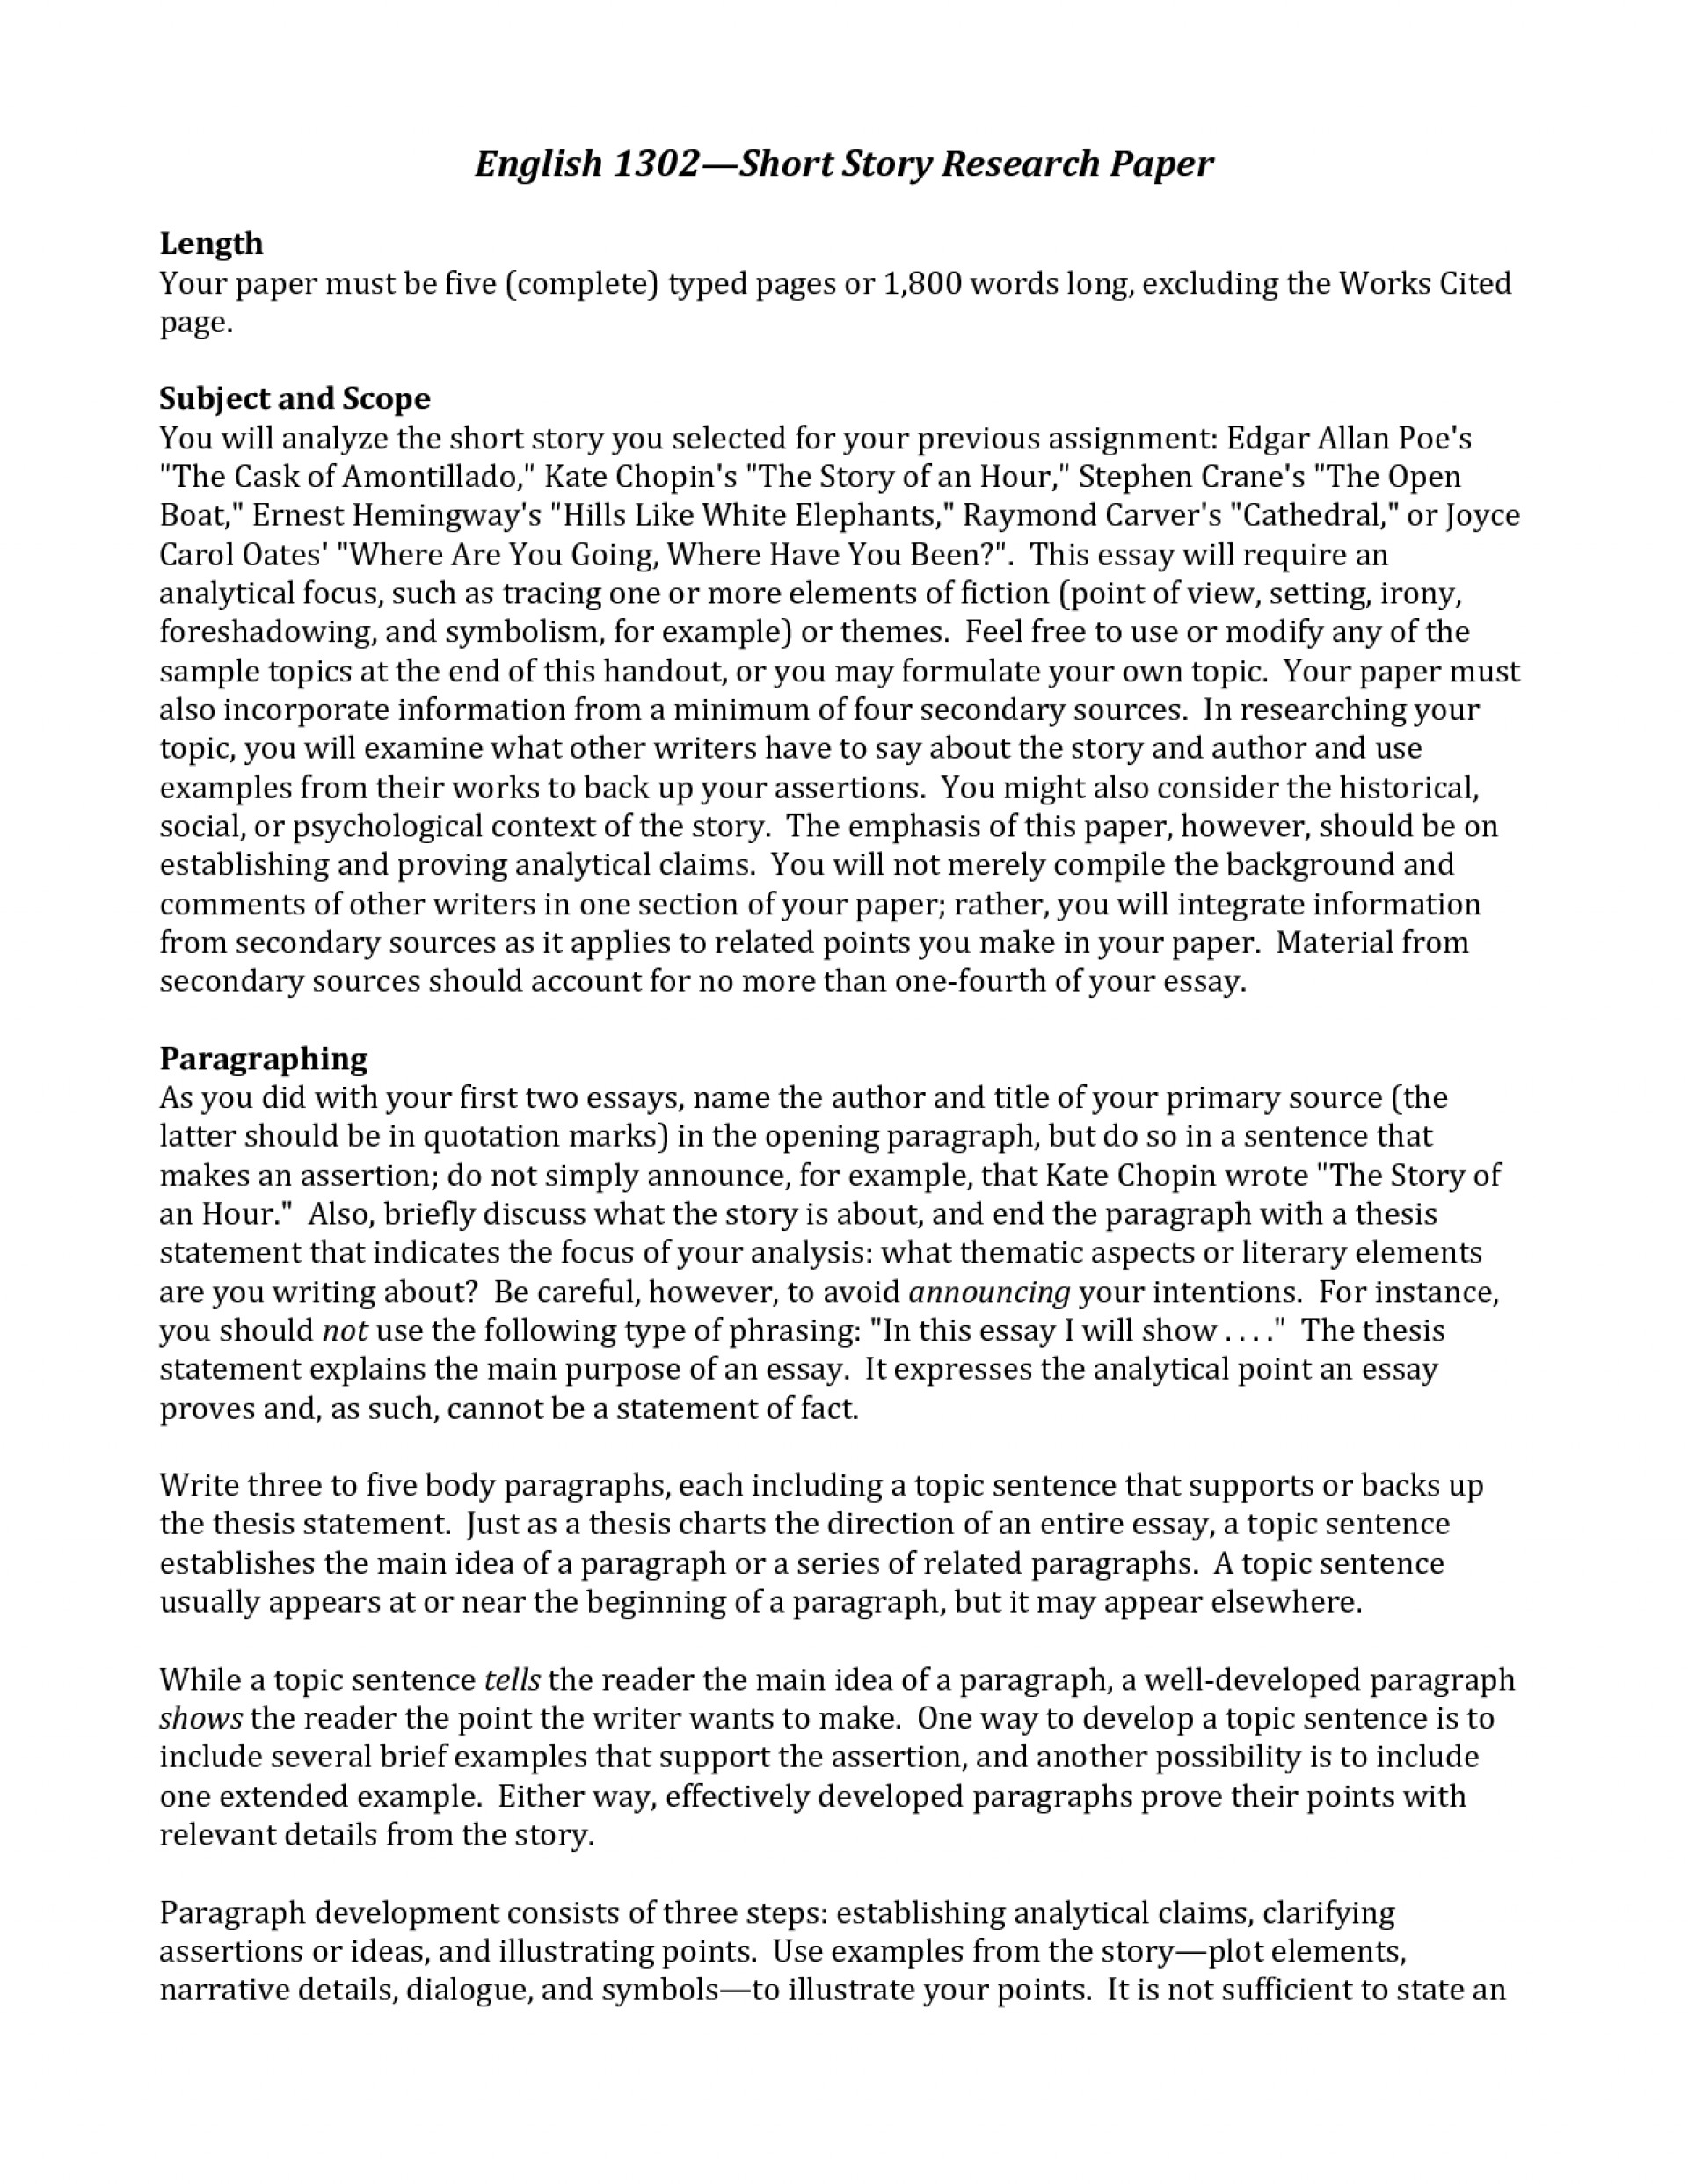 008 Essay Research Paper Topics Shocking Sample Technology About Business Economics 1920